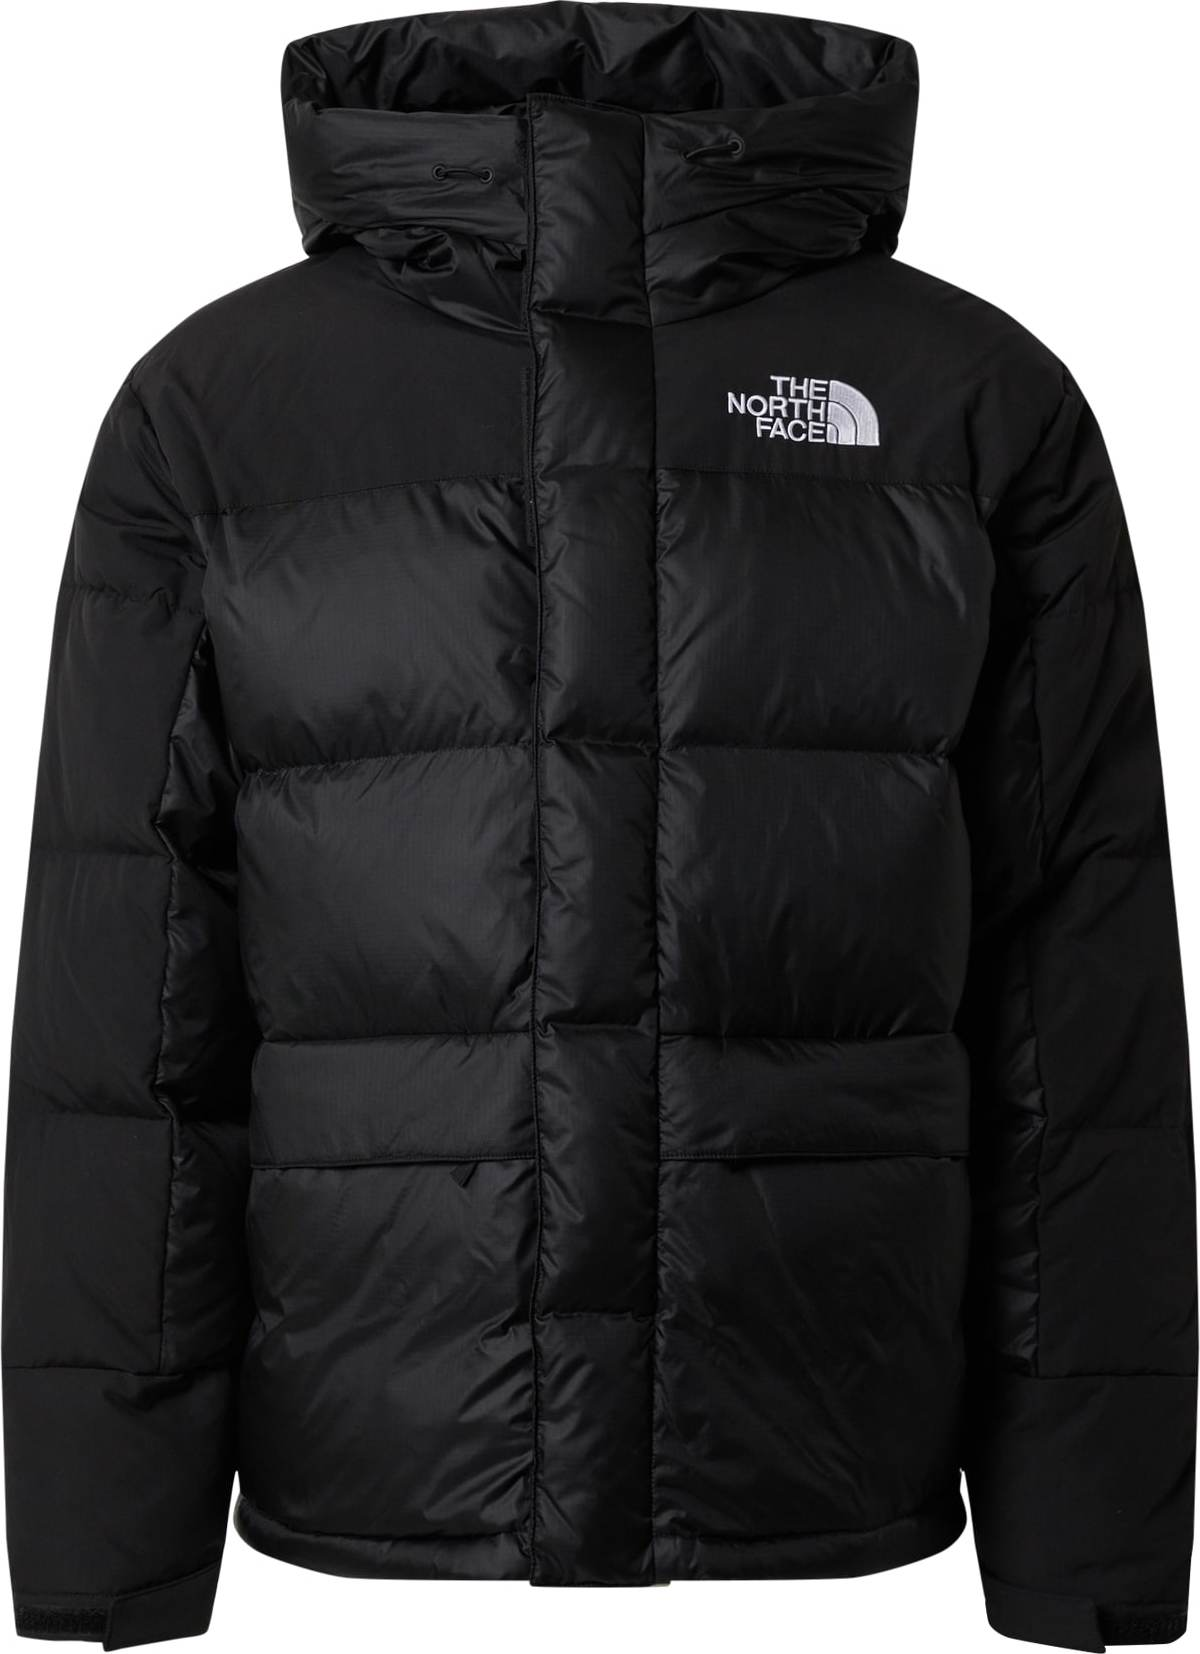 THE NORTH FACE Outdoorová bunda M HMLYN DOWN PARKA bílá černá The North Face